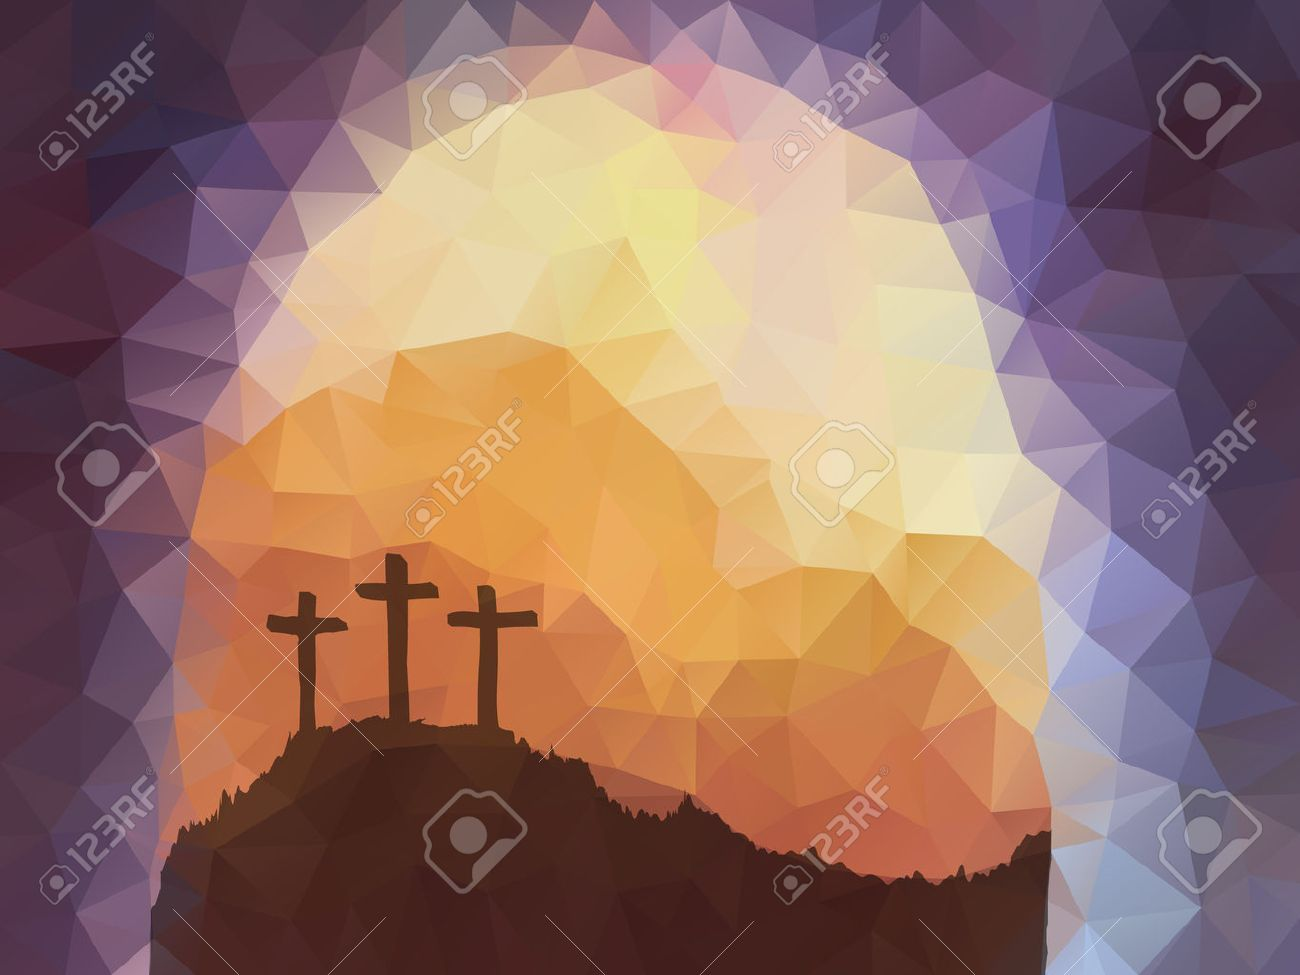 Polygonal vector design. Hand drawn Easter scene with cross. Jesus Christ. Crucifixion. Vector watercolor illustration. - 53143233